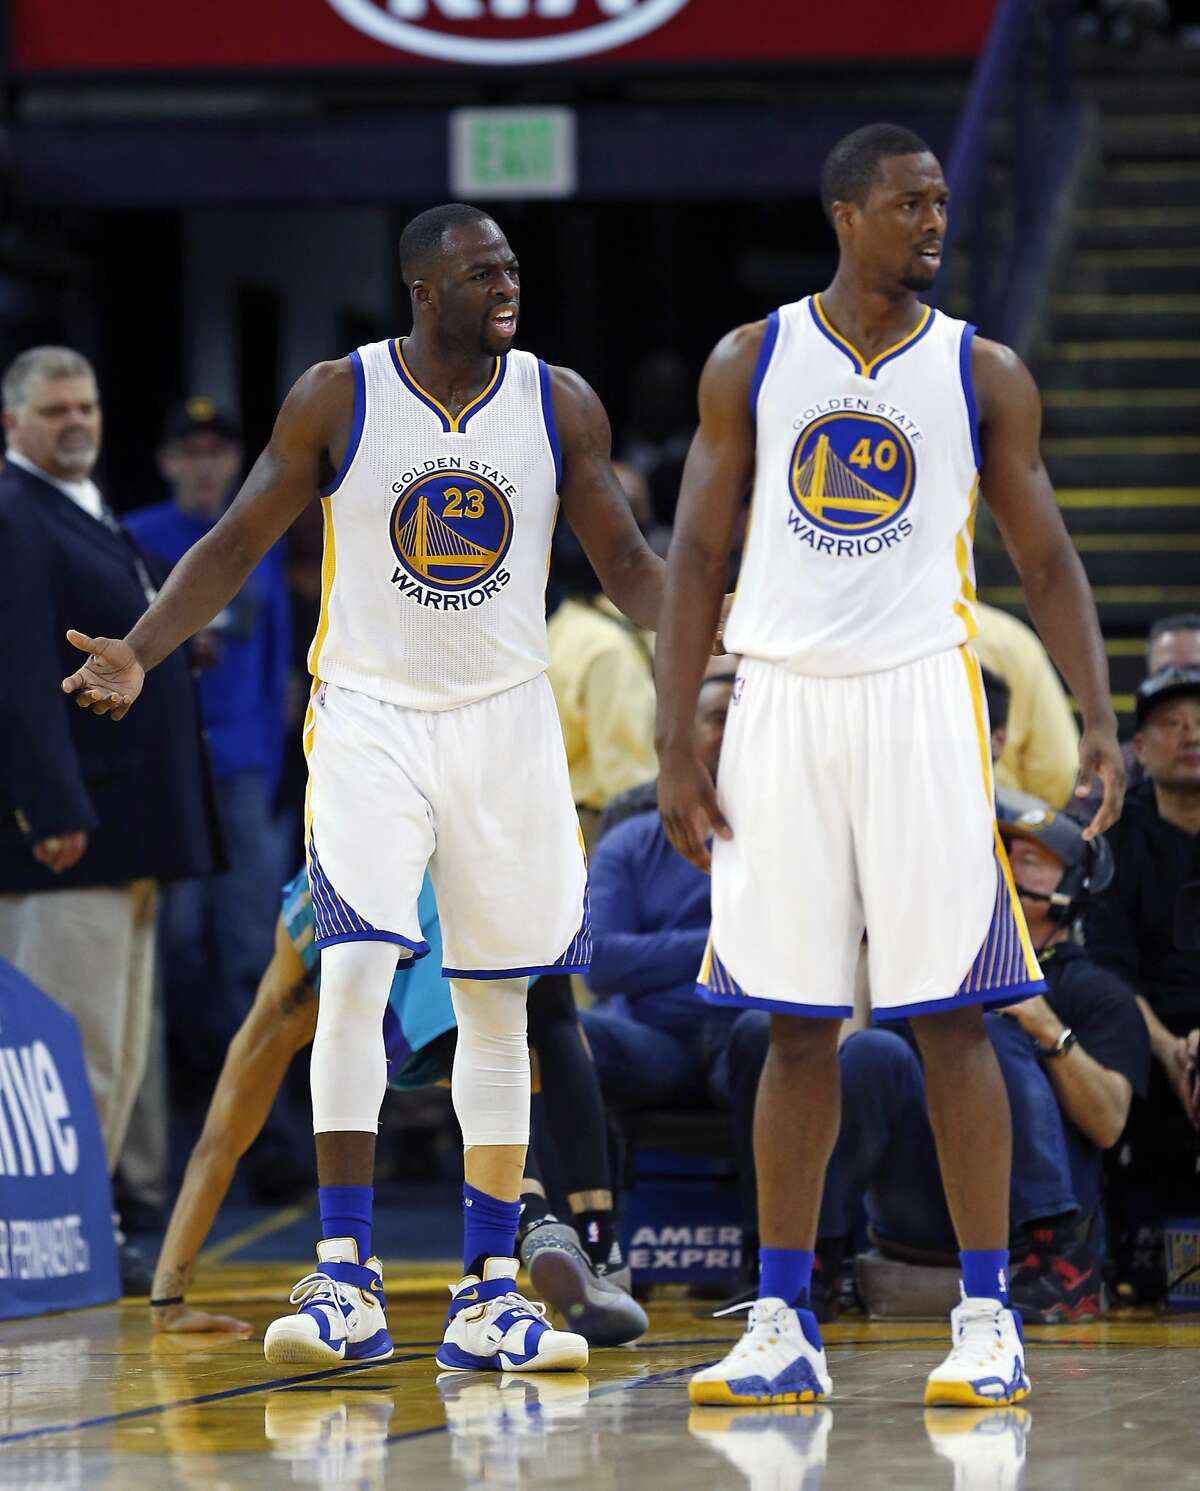 Golden State Warriors' Draymond Green and Harrison Barnes react to a foul call while playing Charlotte Hornets during NBA game at Oracle Arena in Oakland, Calif., on Monday, January 4, 2016.